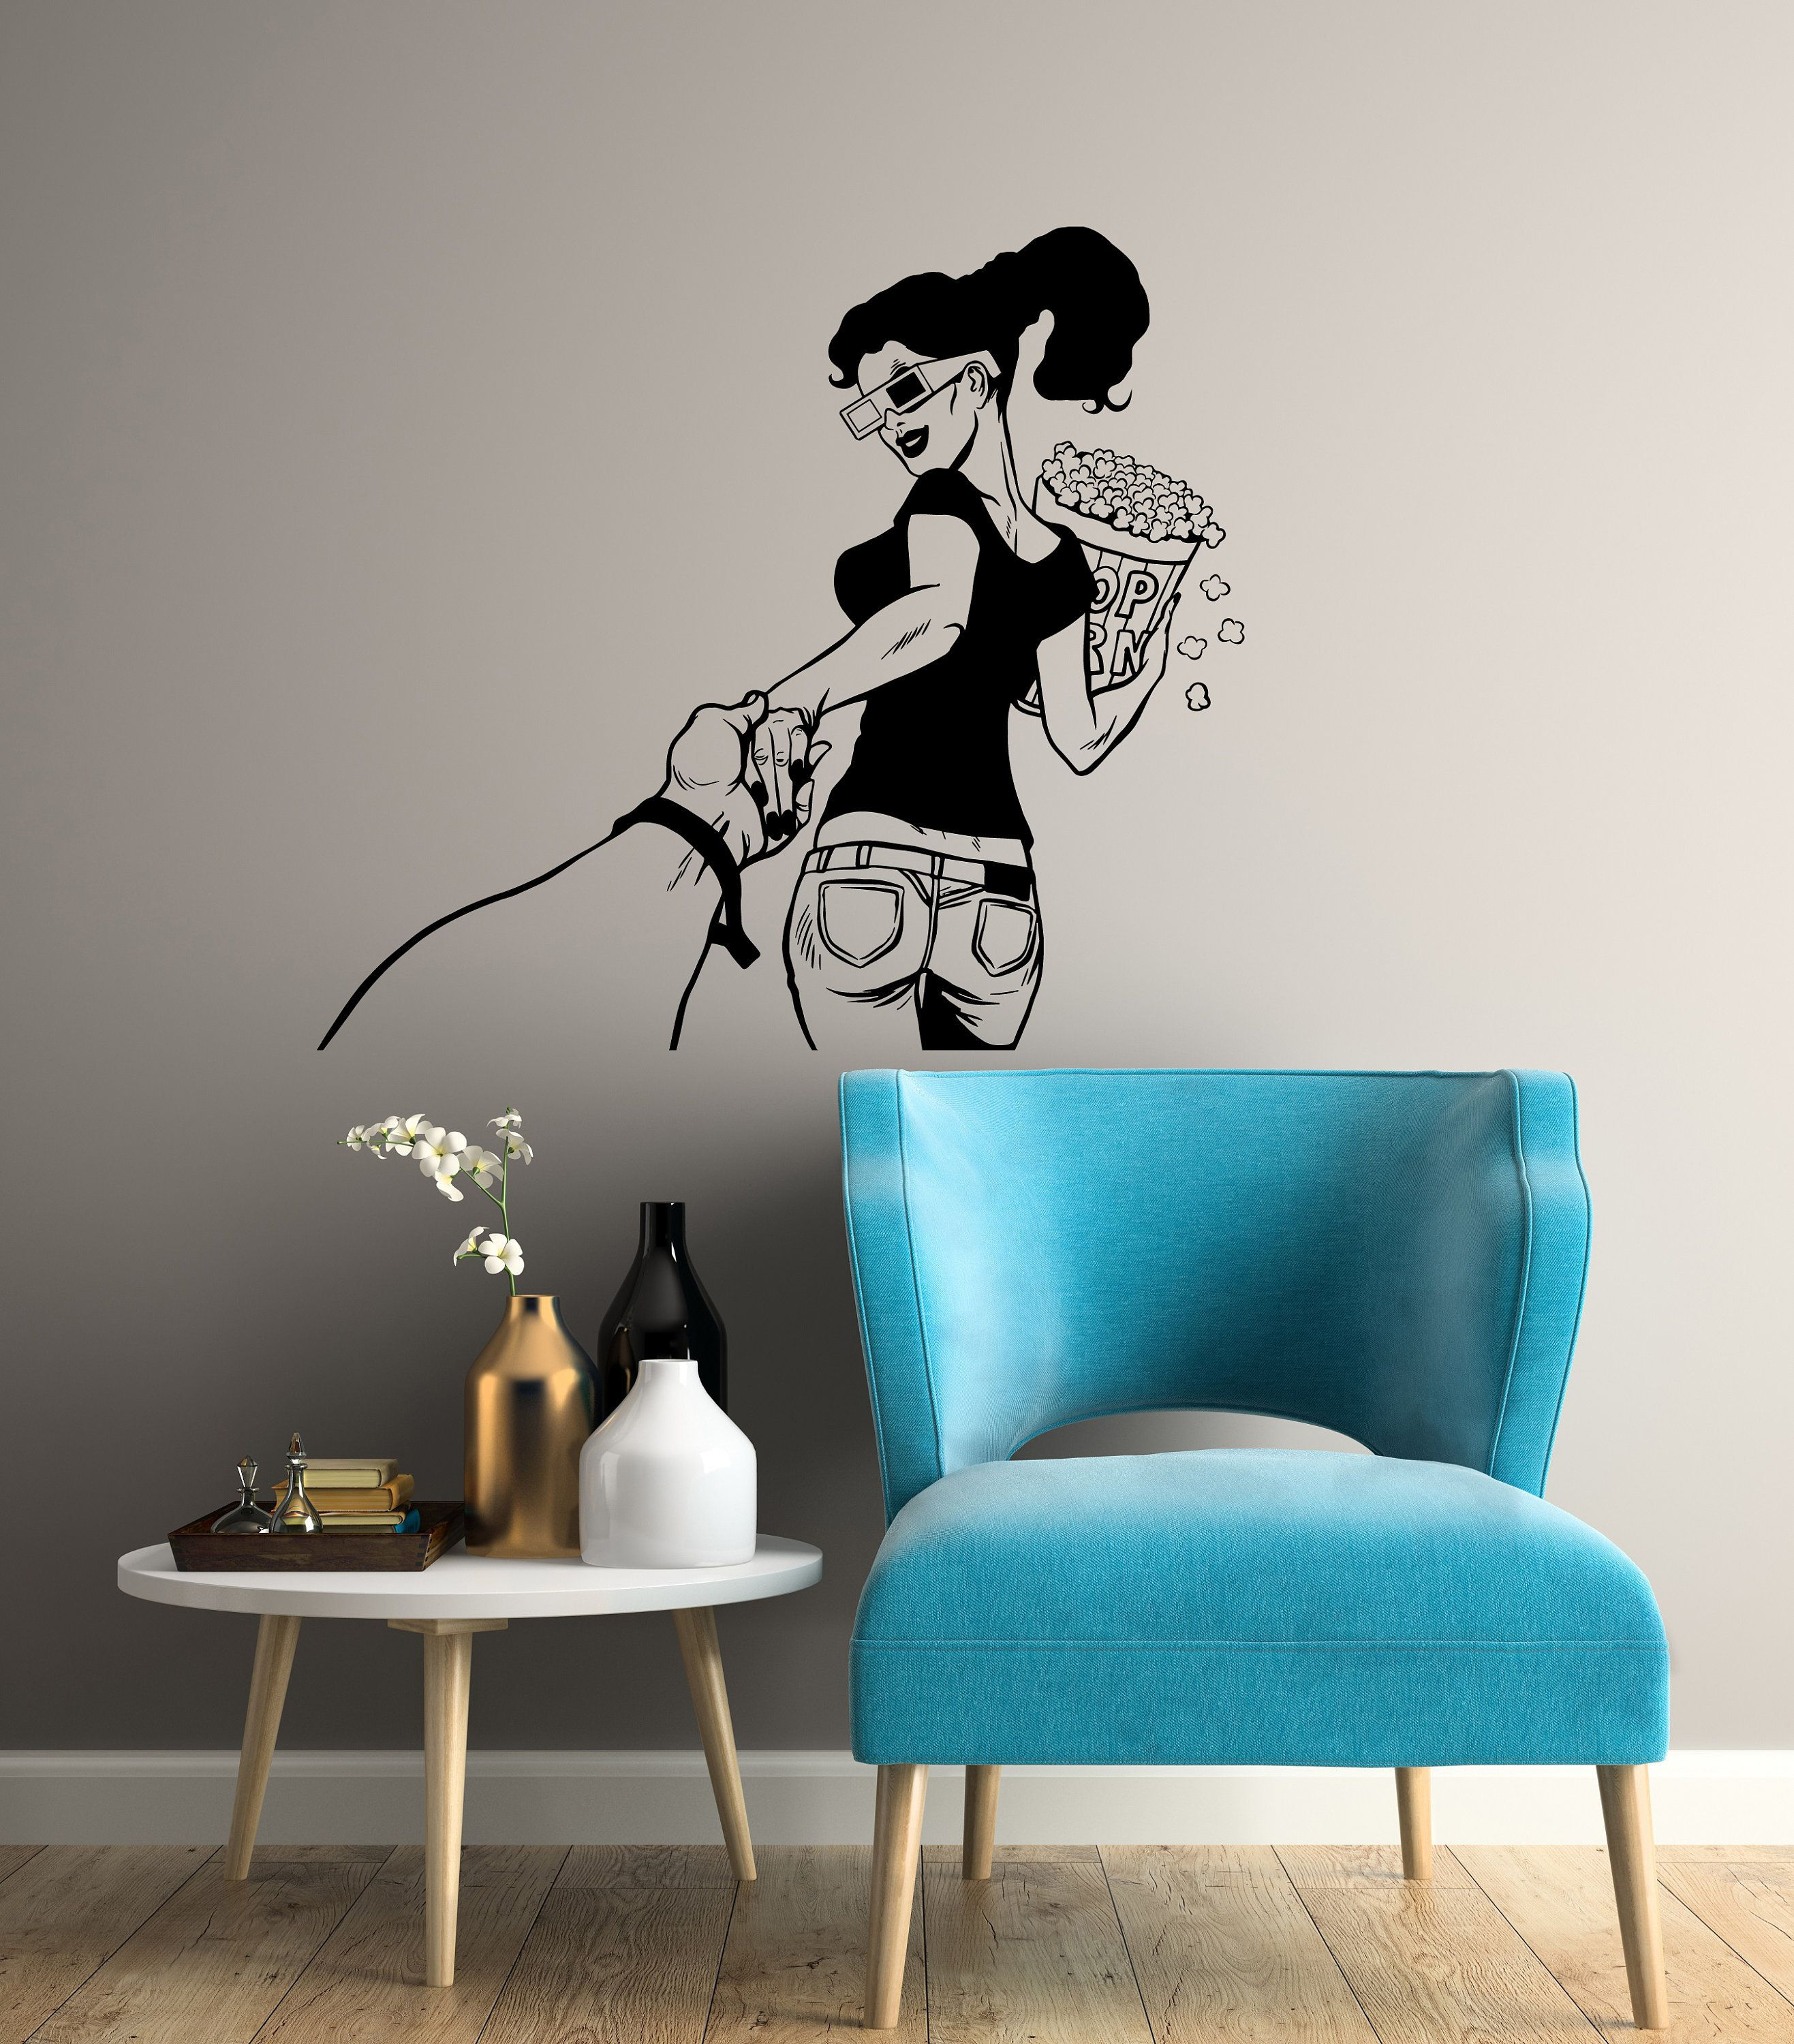 Cinema Vinyl Wall Decal Movie Lover Girl Film Room Decor Etsy Vinyl Wall Decals Modern Wall Stickers Vinyl Wall